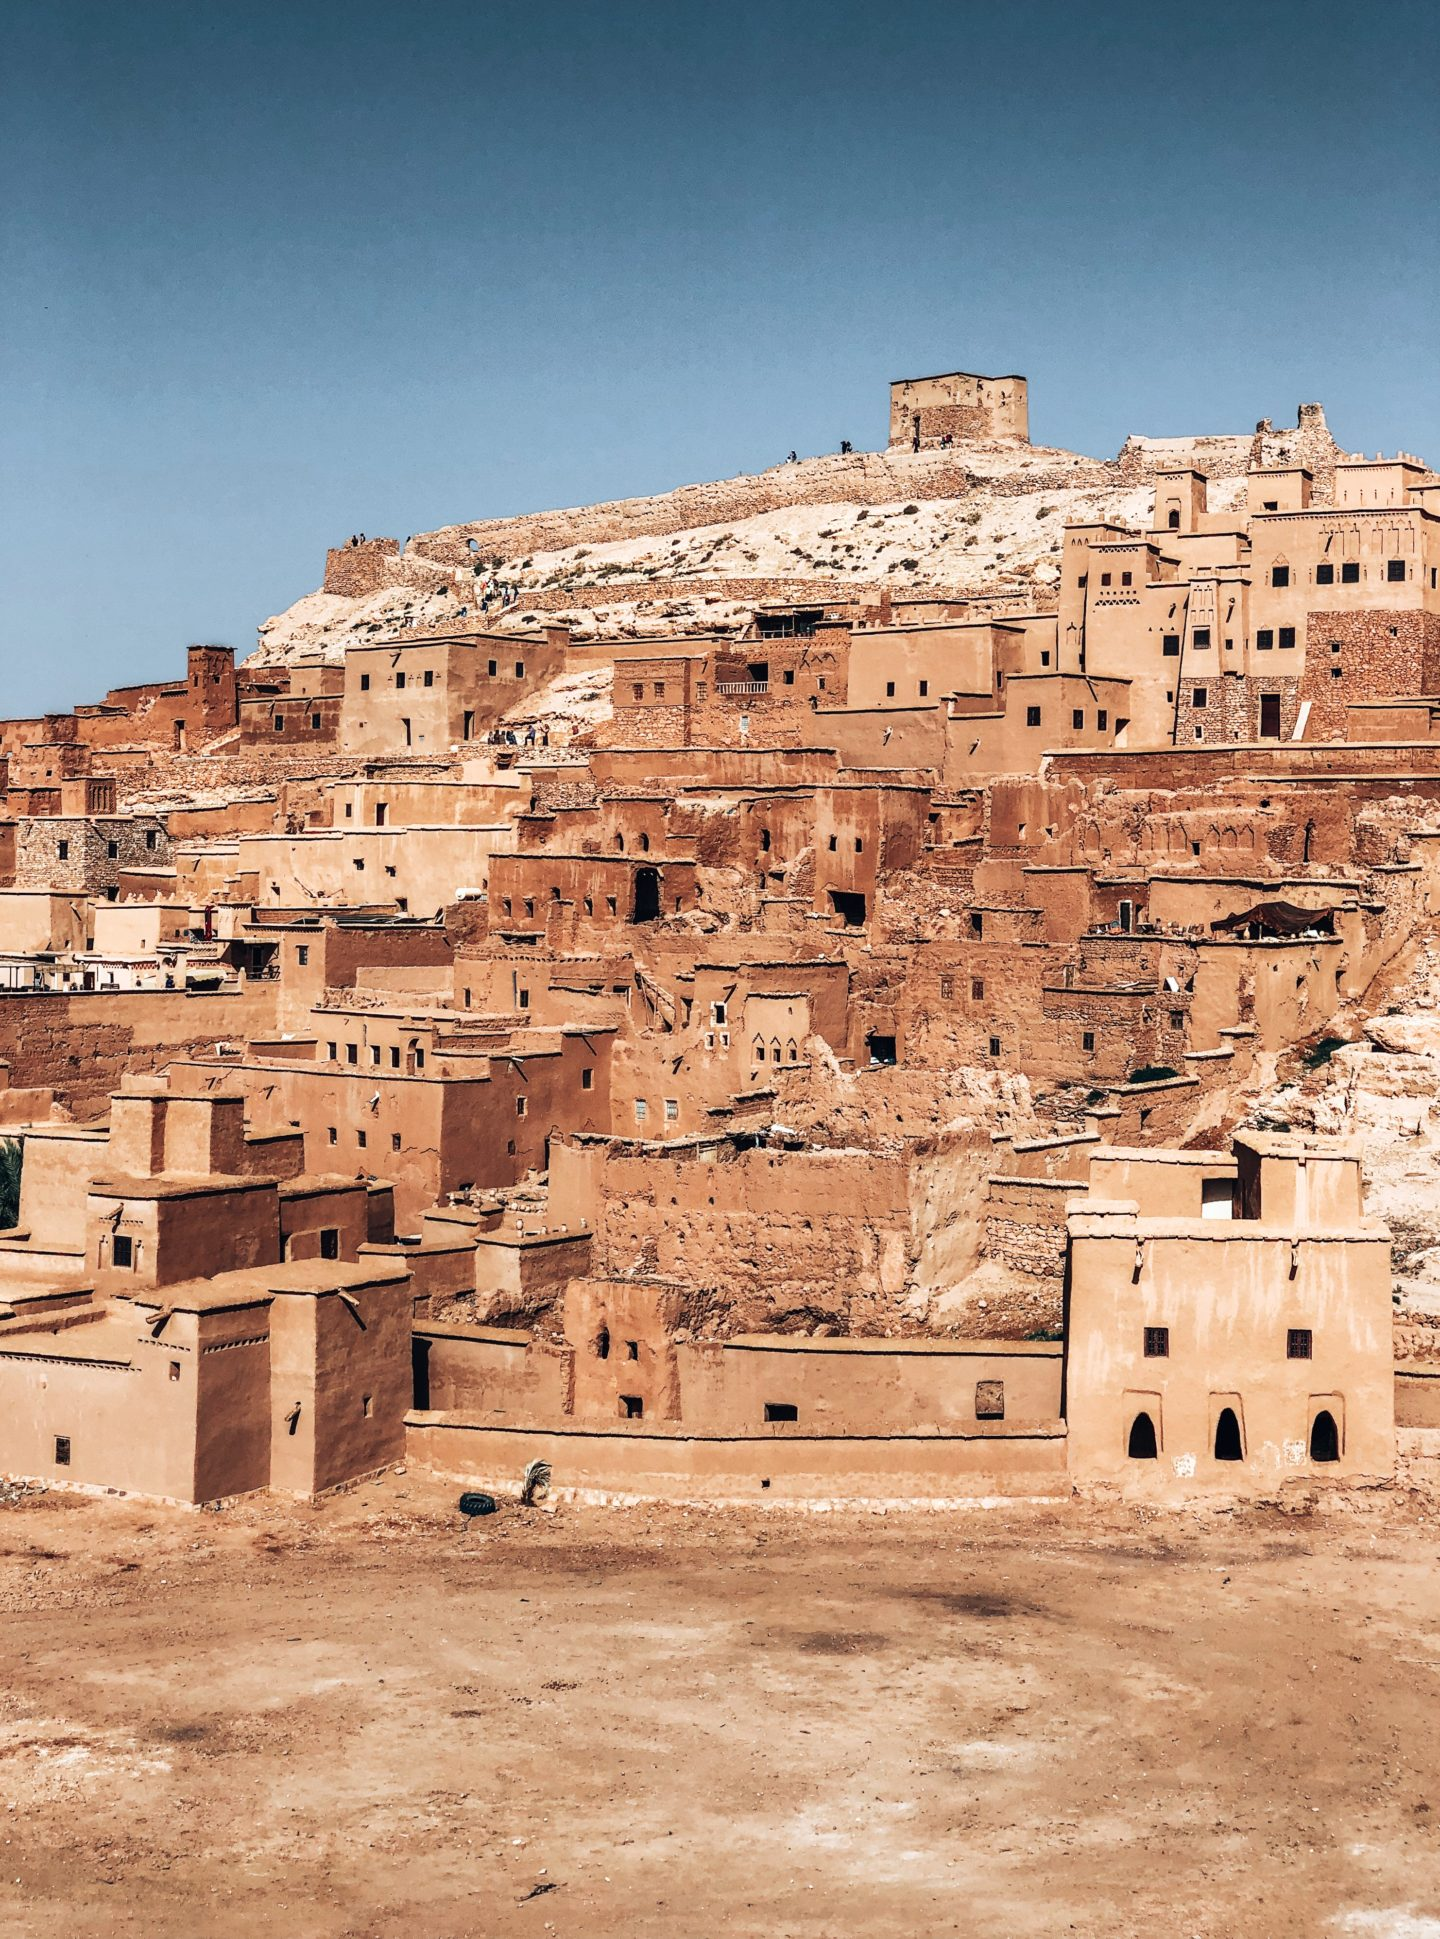 Just like a move scene, the chalky red-brown architecture of Ben Ait Haddou in Morocco makes you feel like you are in a whole other world.